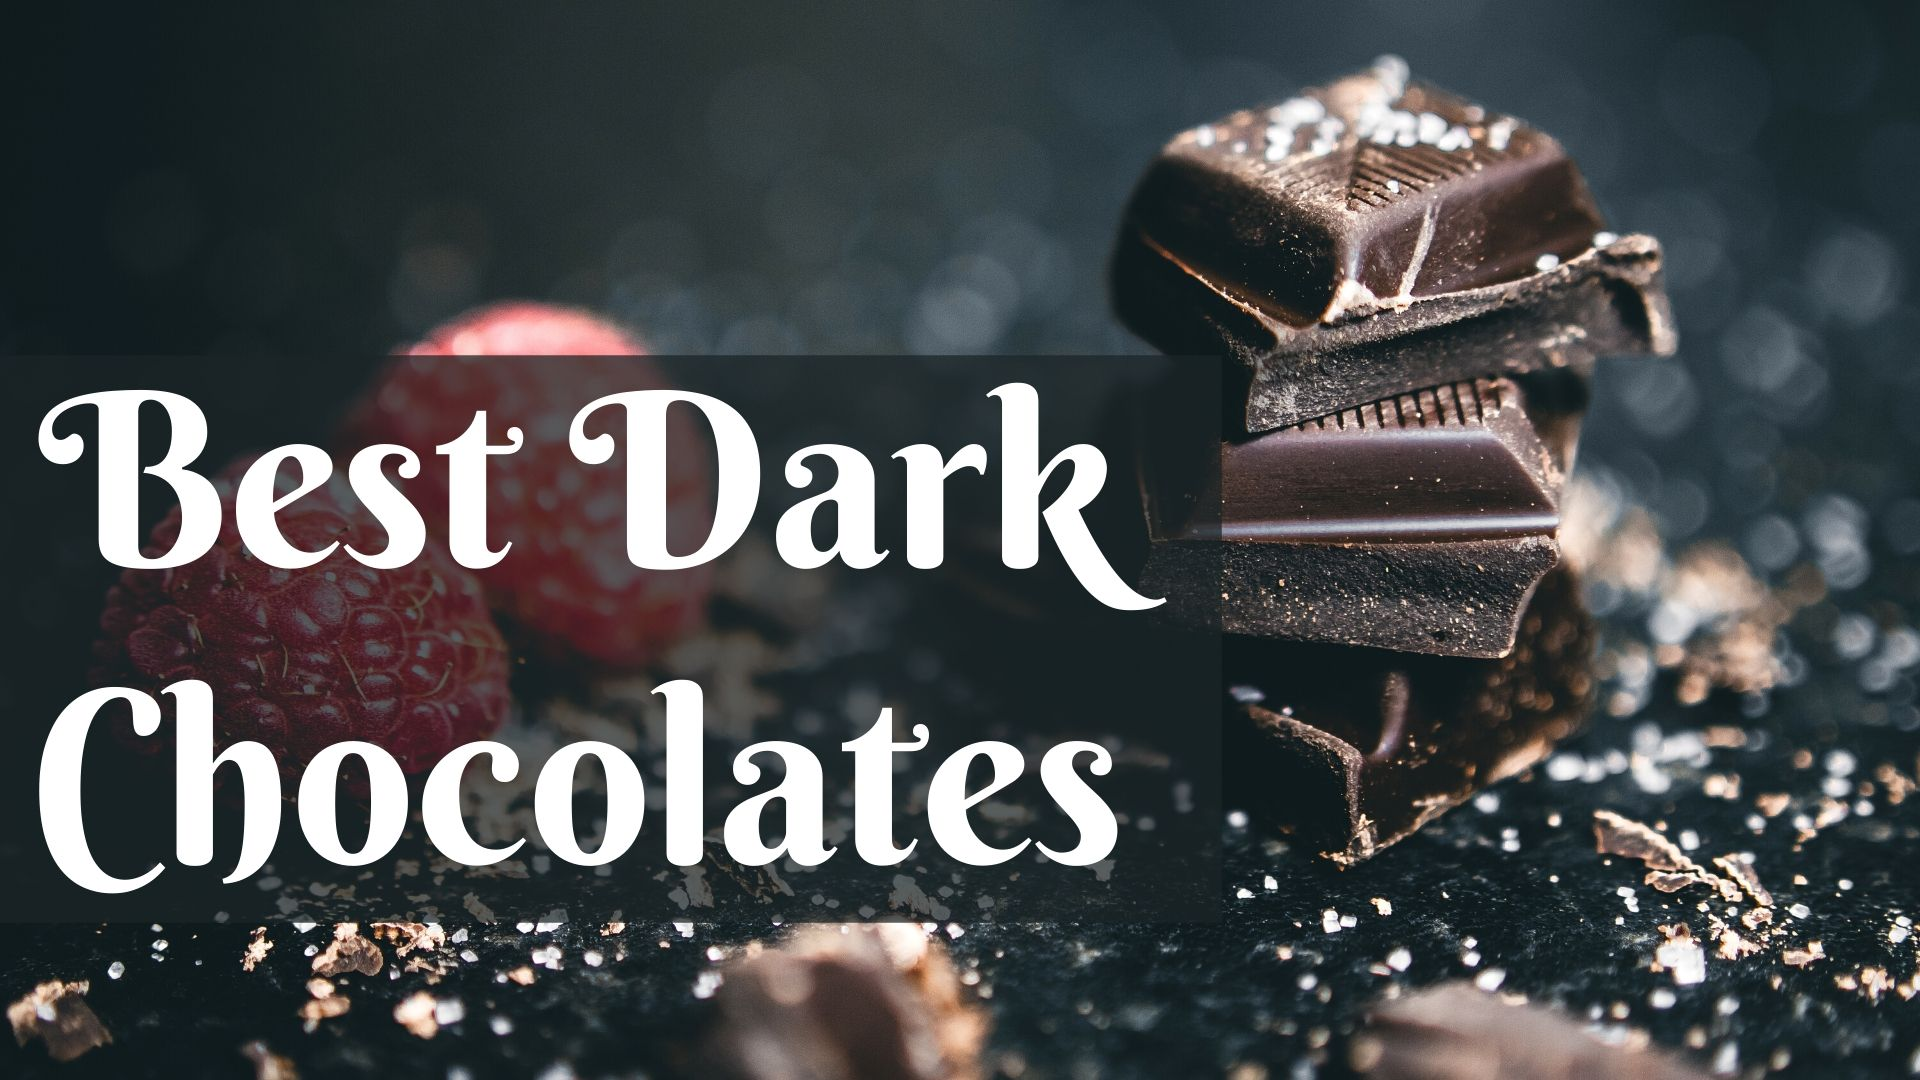 Best Dark Chocolates